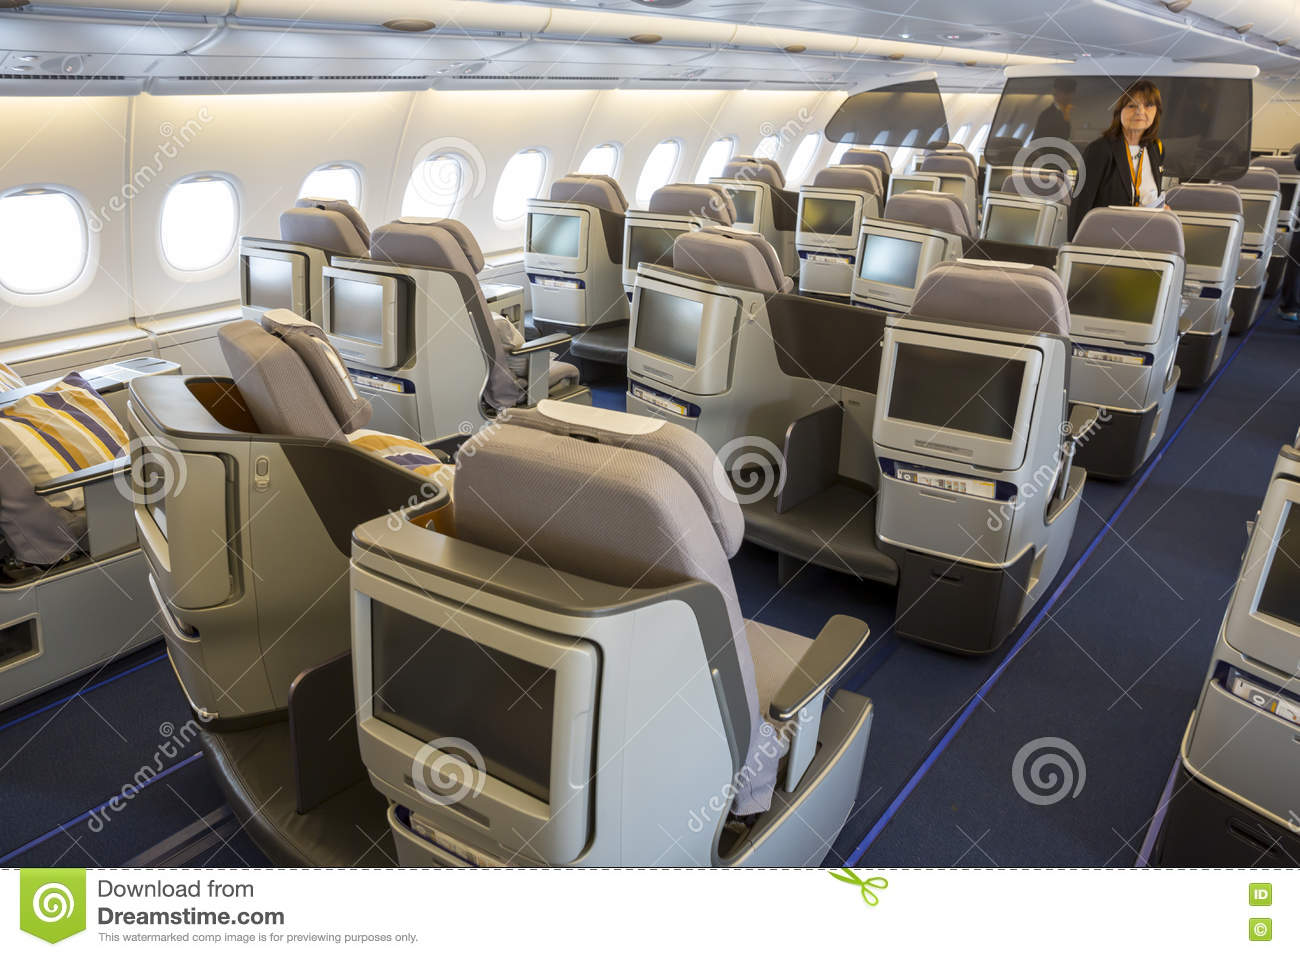 Airbus A380 Airplane Inside Seats Editorial Stock Image - Image of ...